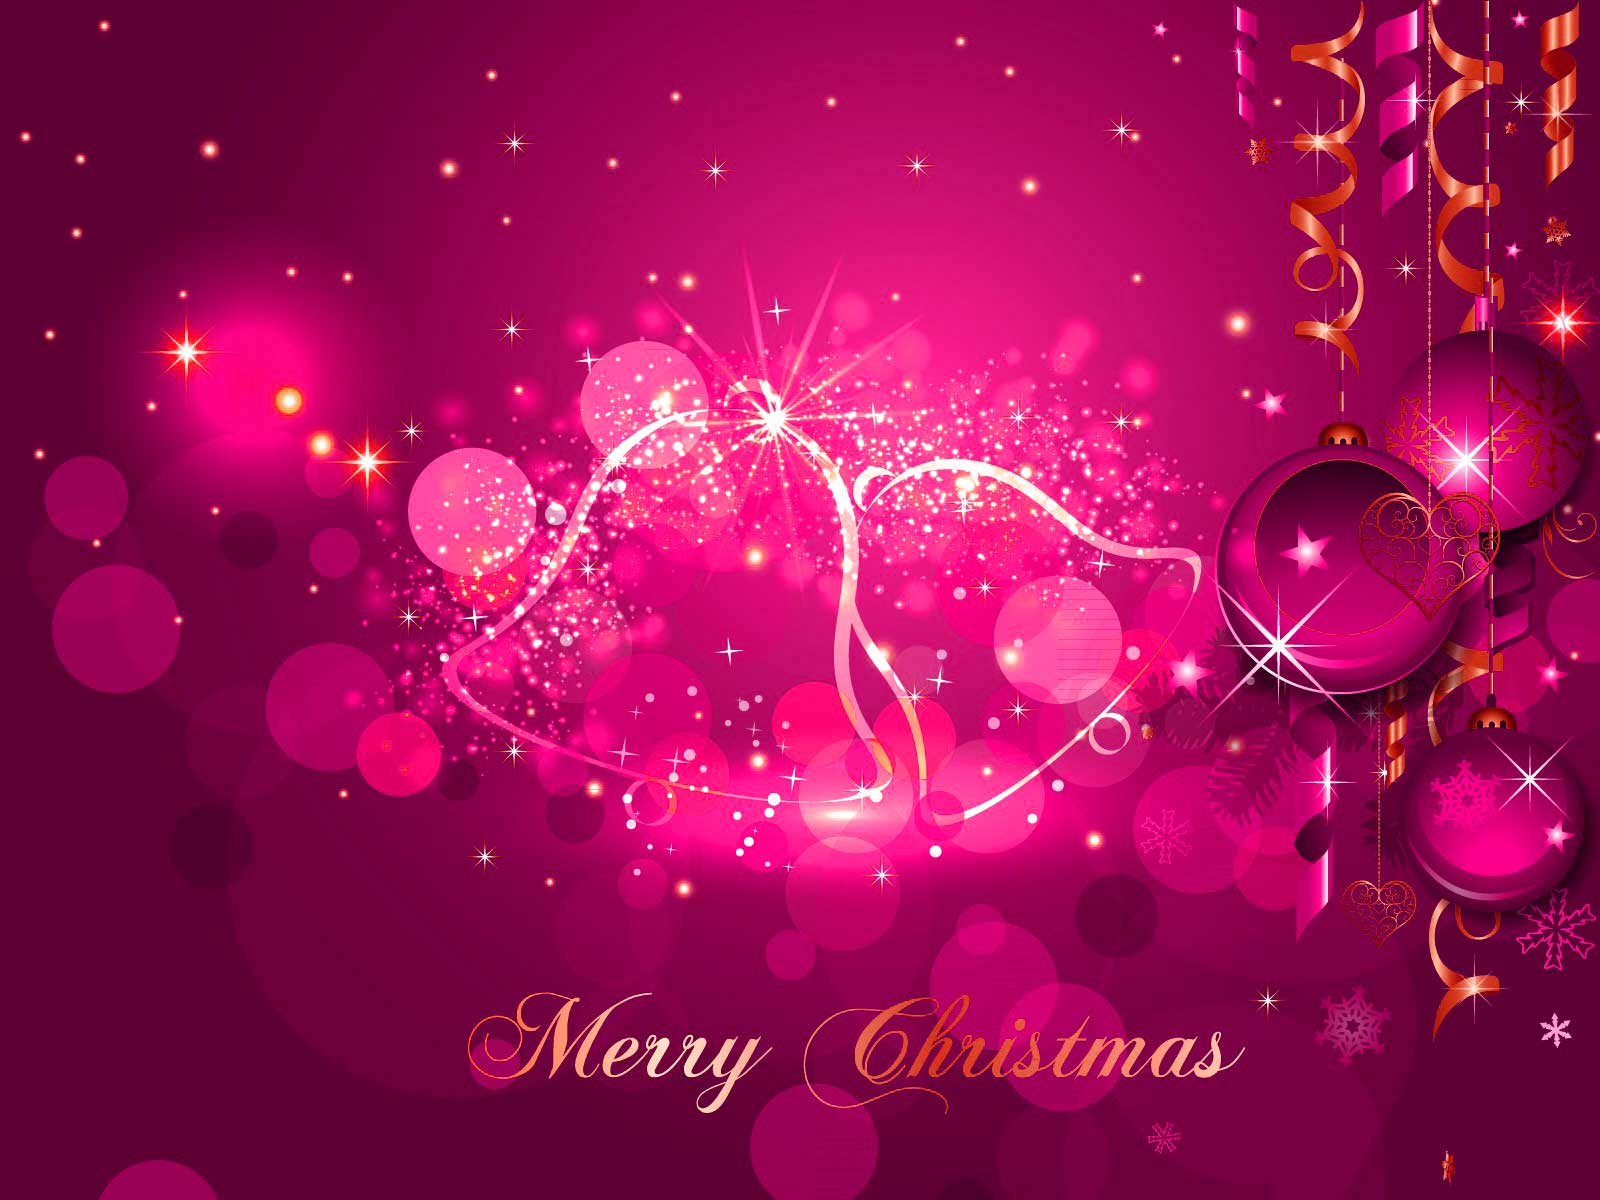 merry-christmas-hdimages